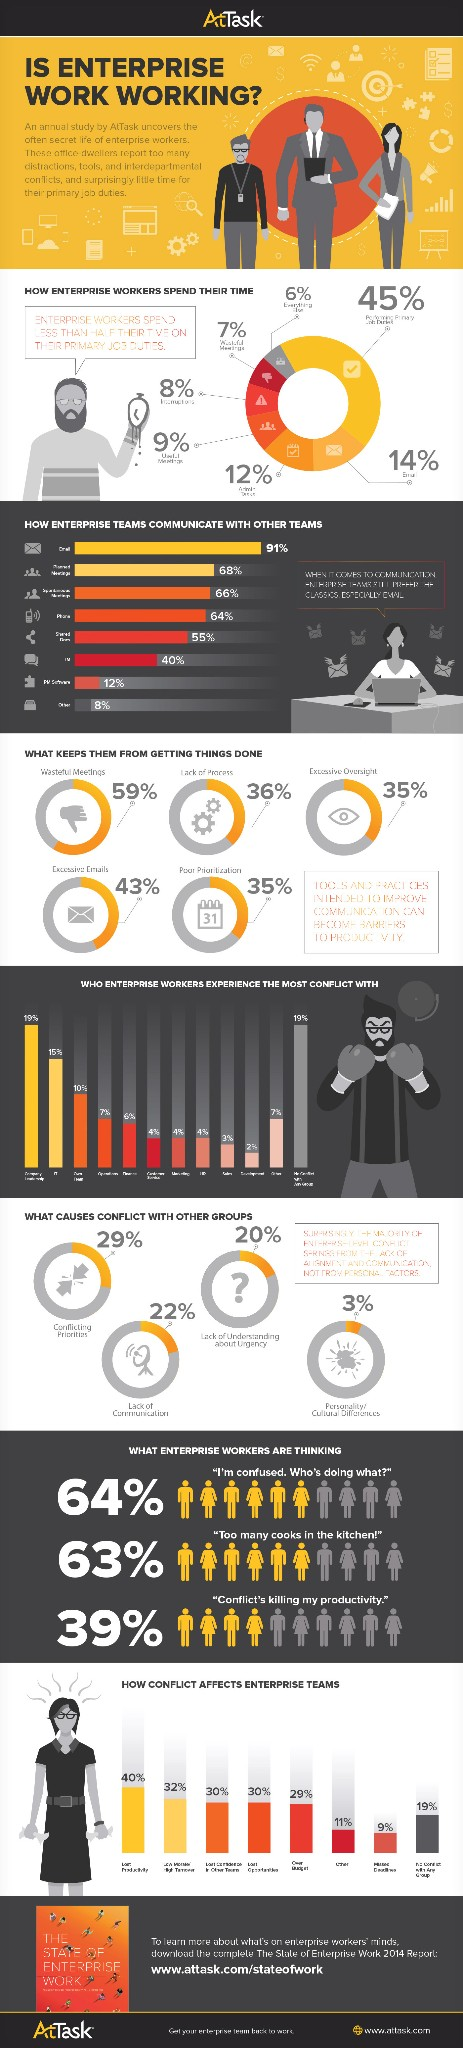 How Much Time Do Your Employees Spend Doing Real Work? The Answer May Surprise You. (Infographic)